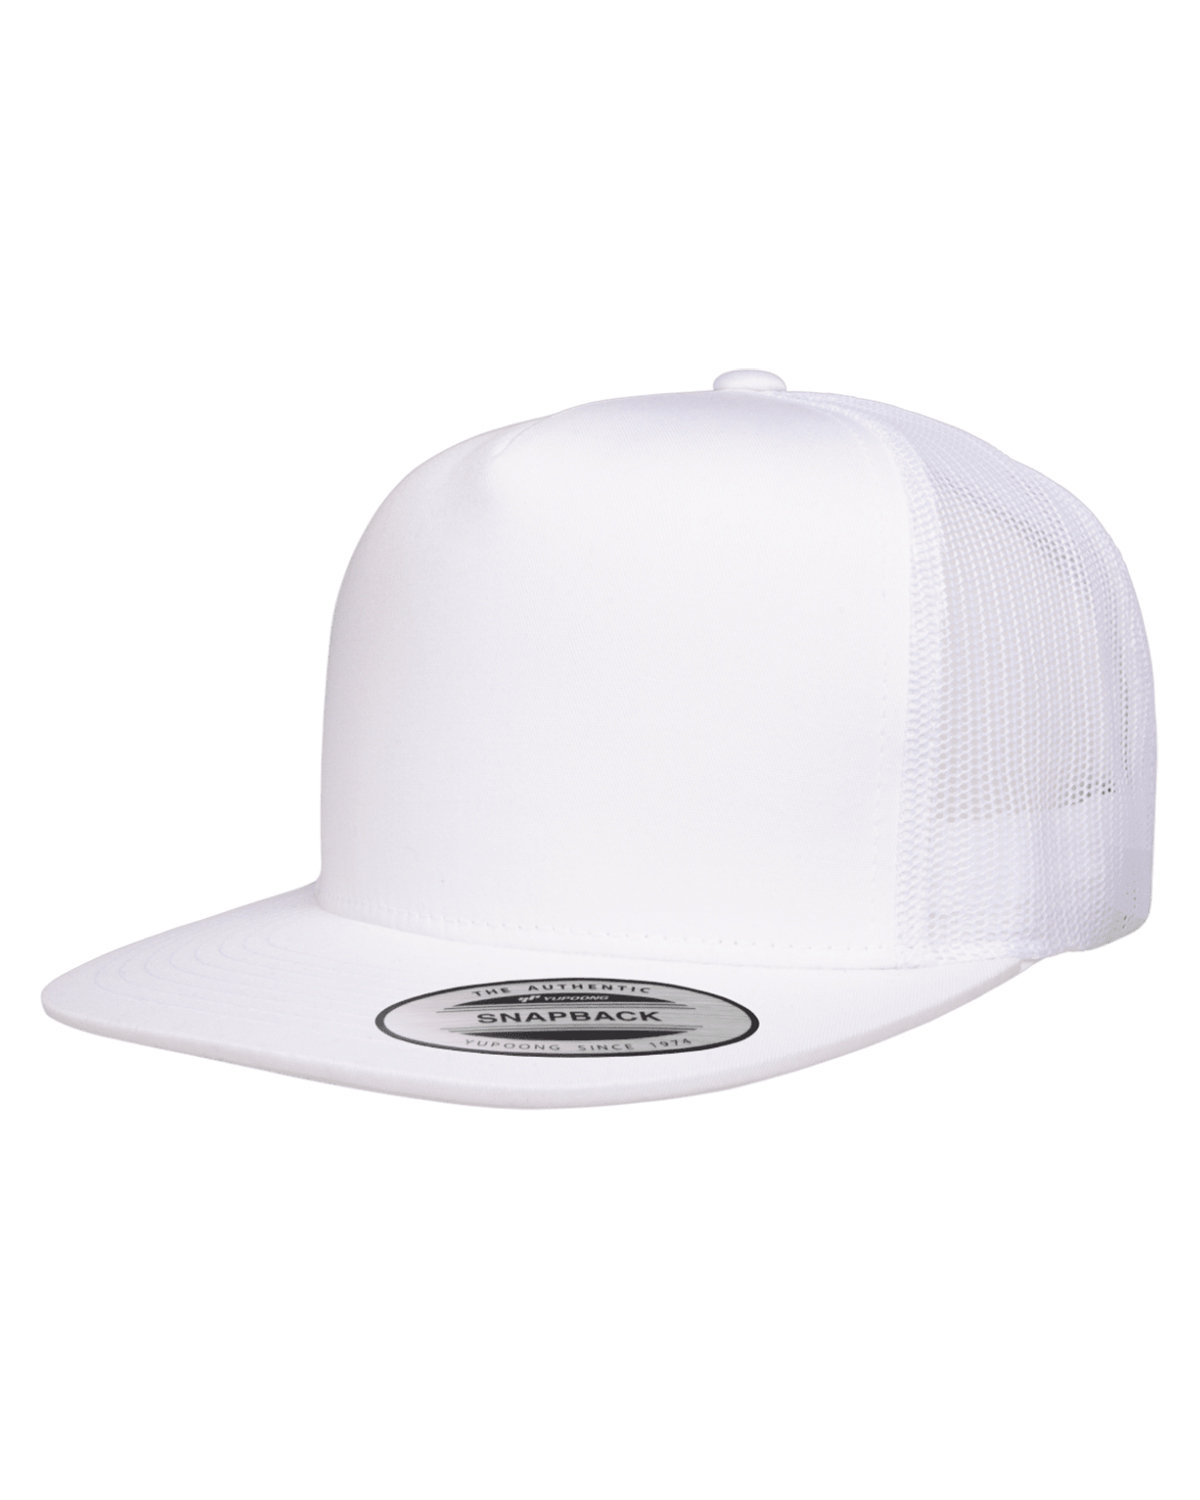 Yupoong Adult 5-Panel Classic Trucker Cap WHITE